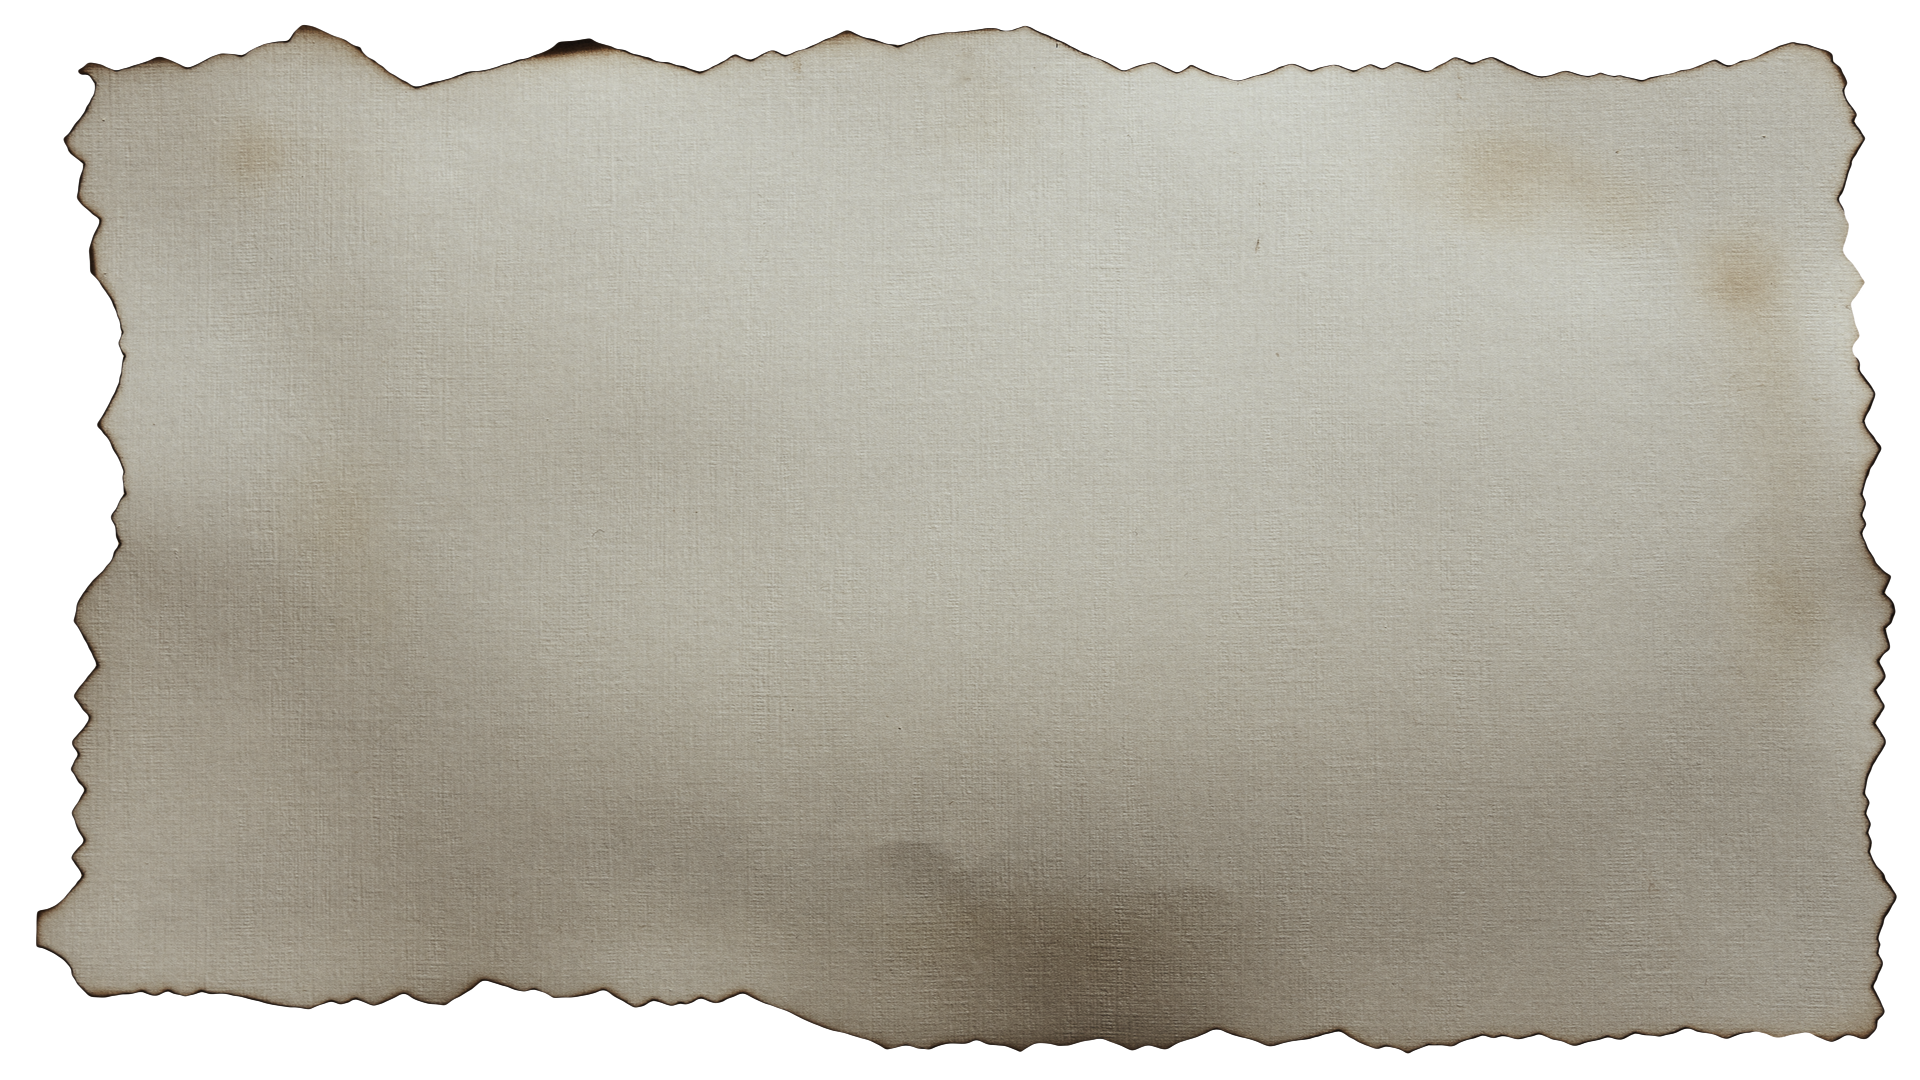 Old Burned Paper Texture Background HD